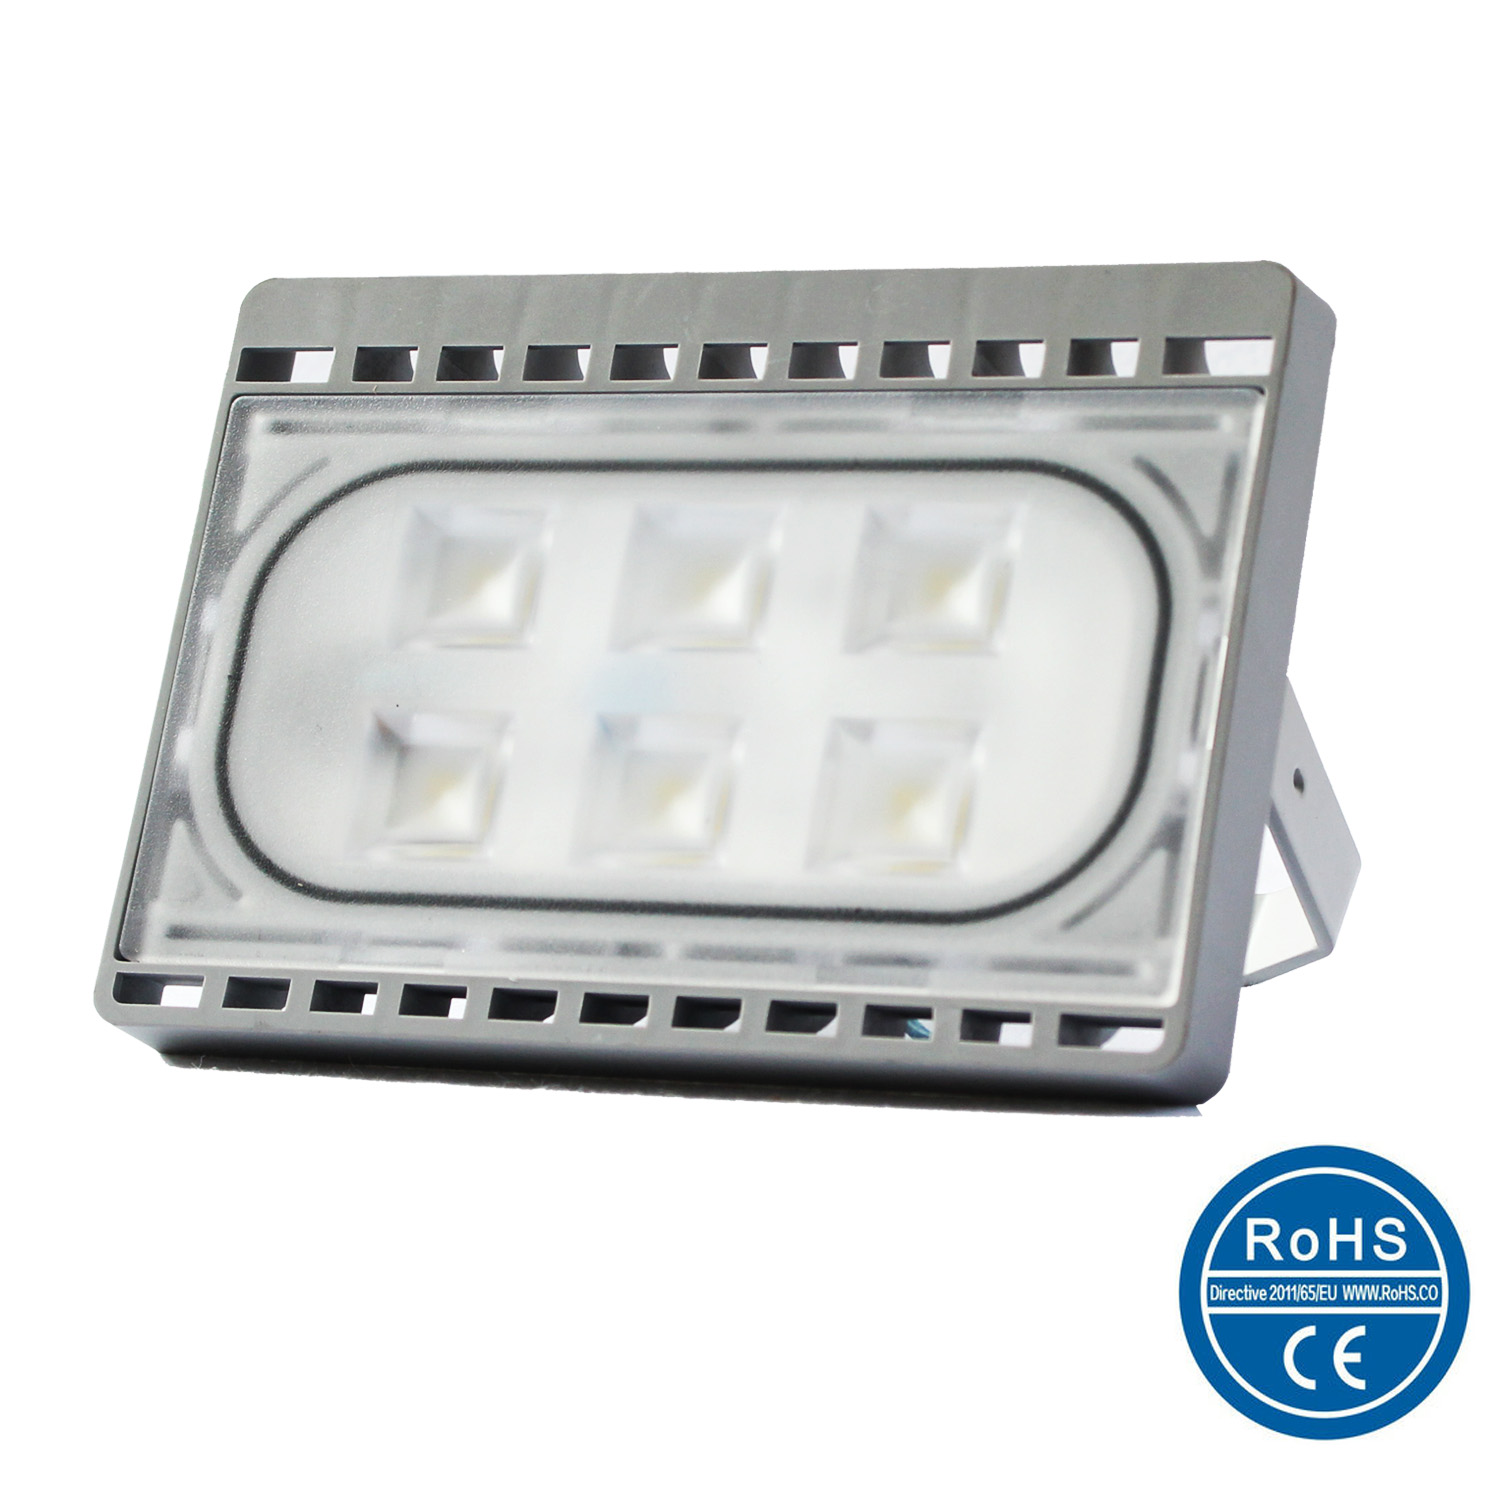 New slim led flood light/outdoor garden led flood light 20W/30W/50W/70W/100W/150W/200W